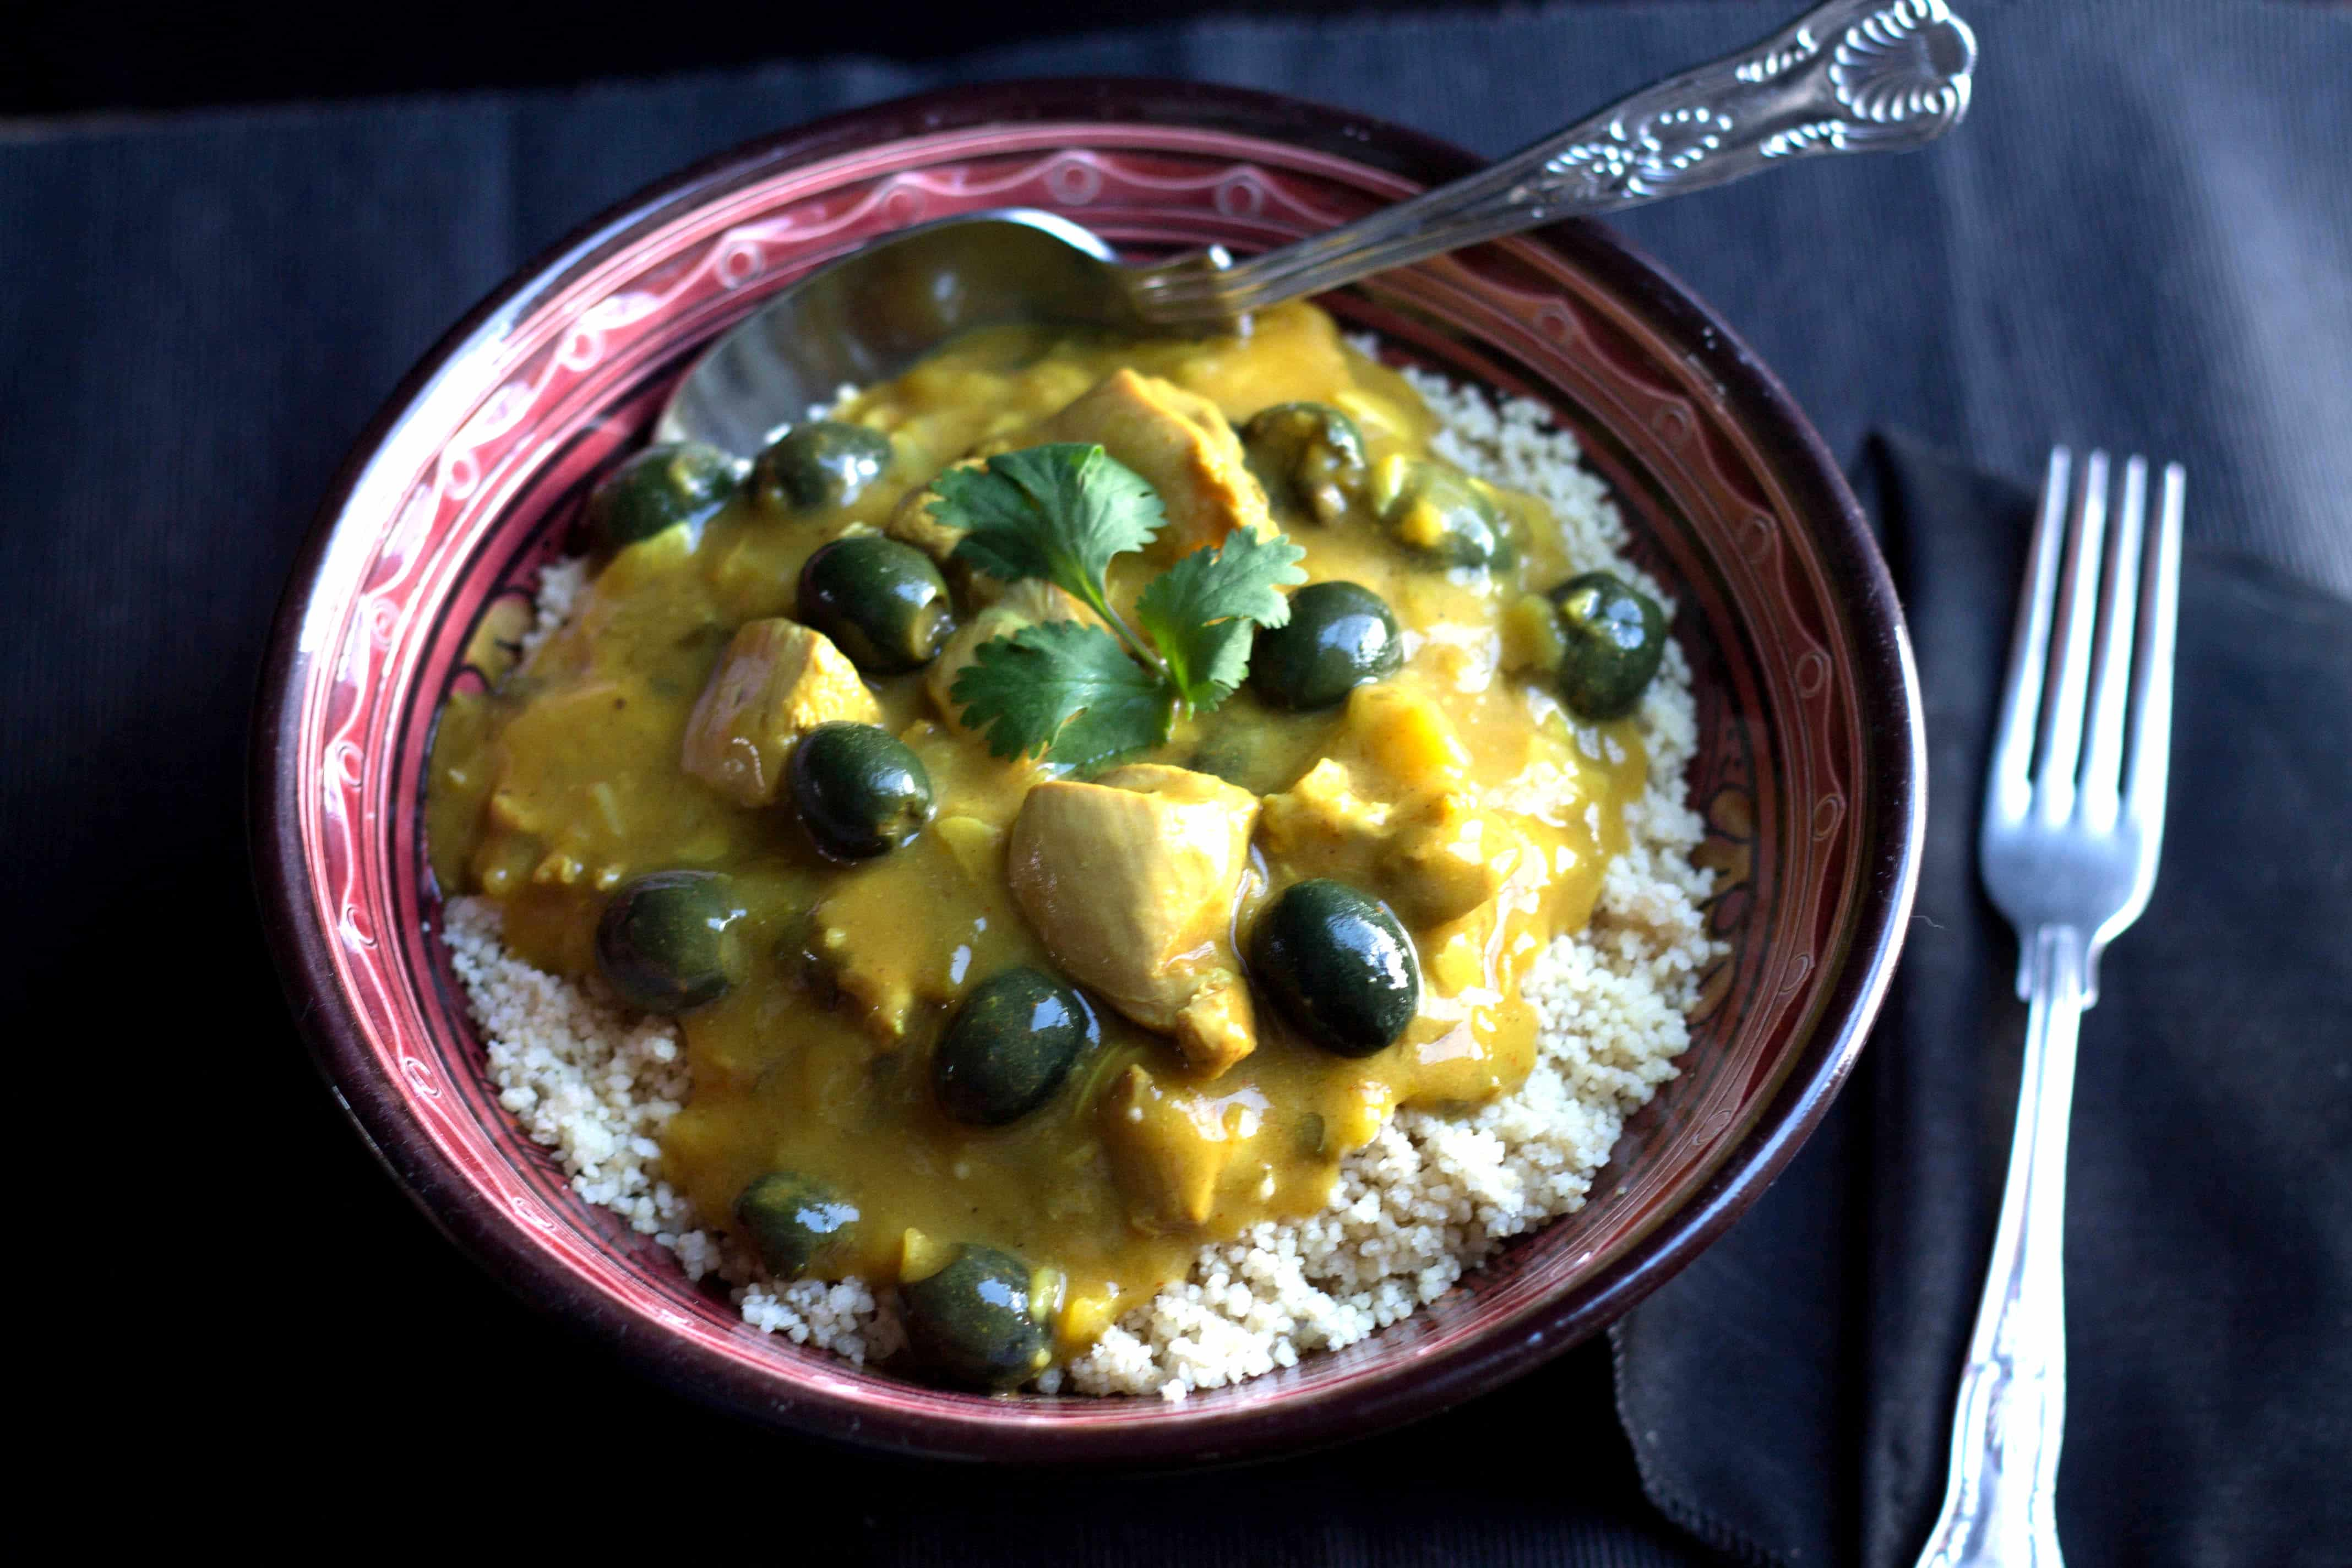 Moroccan Chicken - Erren's Kitchen - This recipe is a tasty, aromatic dish with many levels of flavor . Serve it with couscous for a filling, luxurious meal.